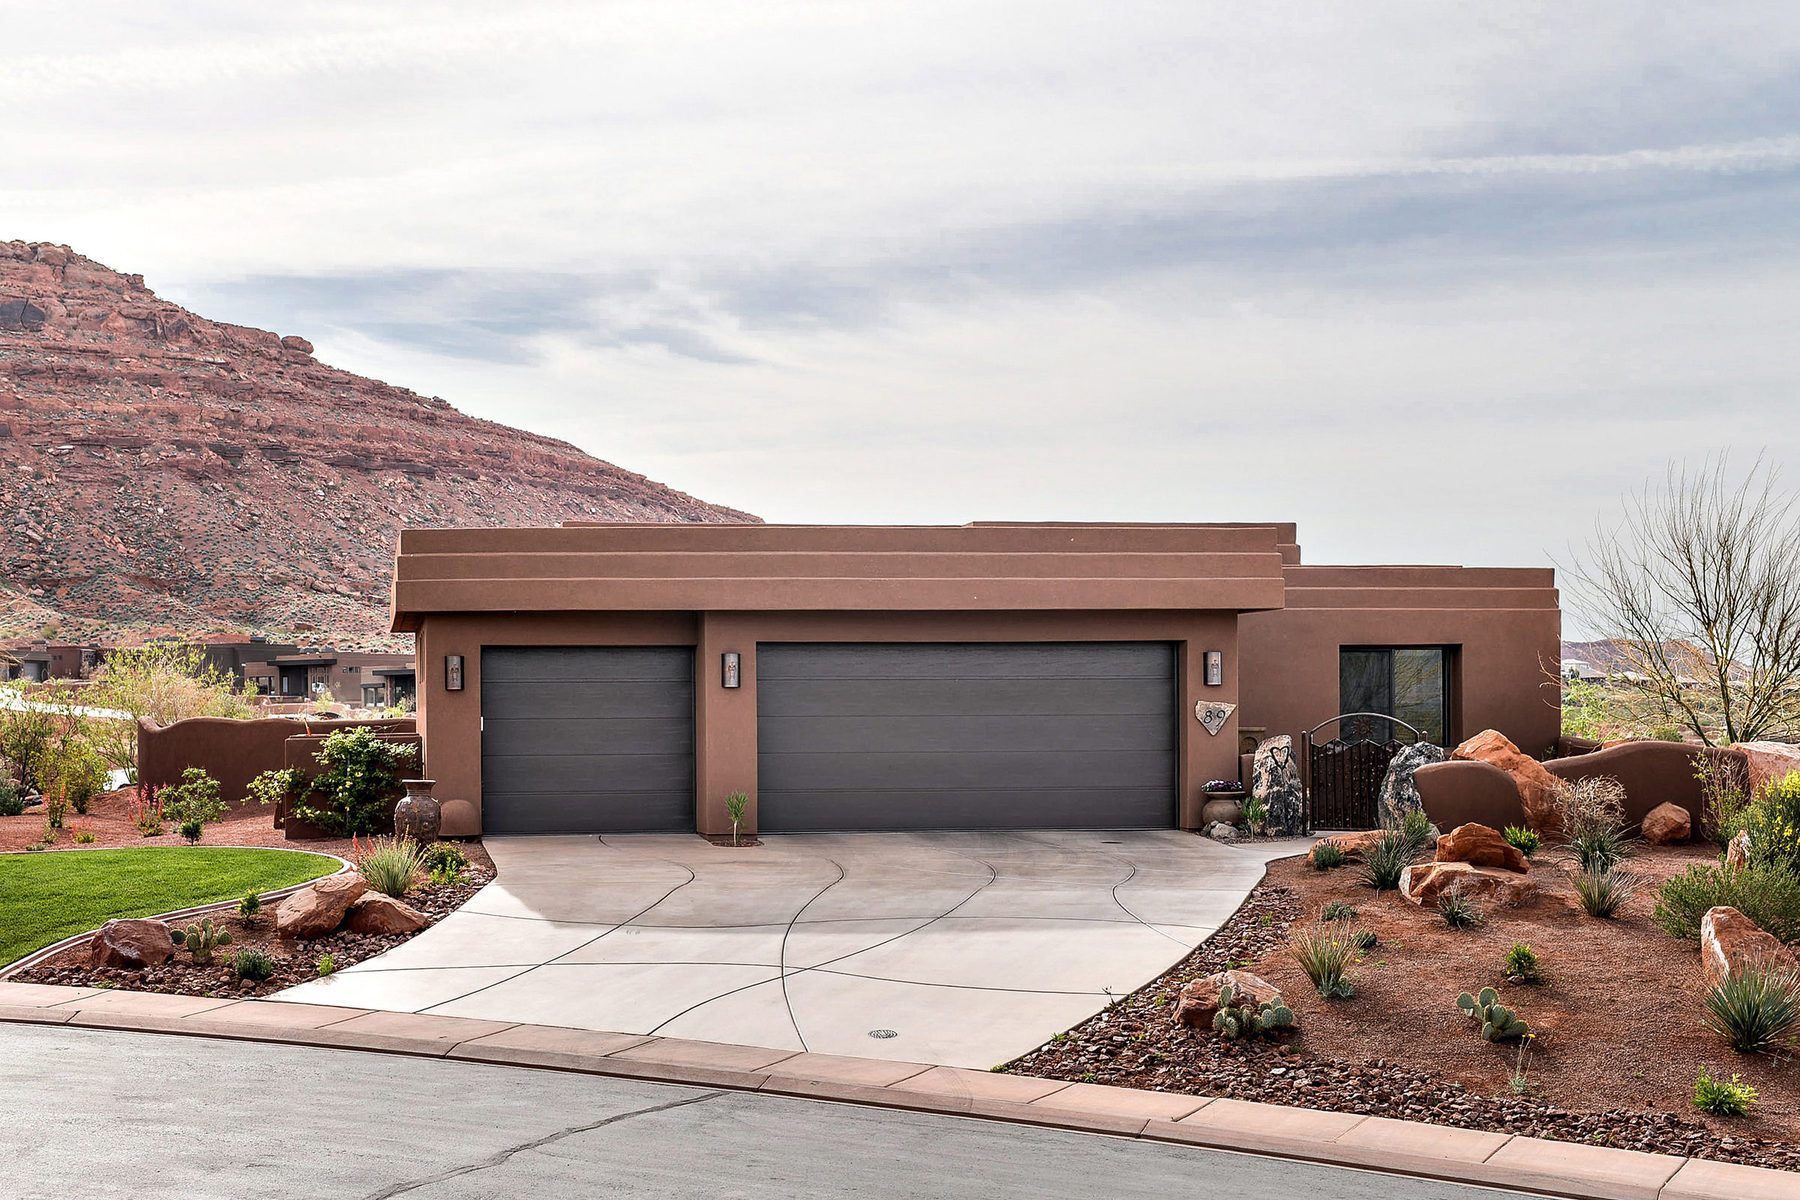 Casa Unifamiliar por un Venta en Private Retreat 2331 W Entrada Trl, #89 St. George, Utah, 84770 Estados Unidos